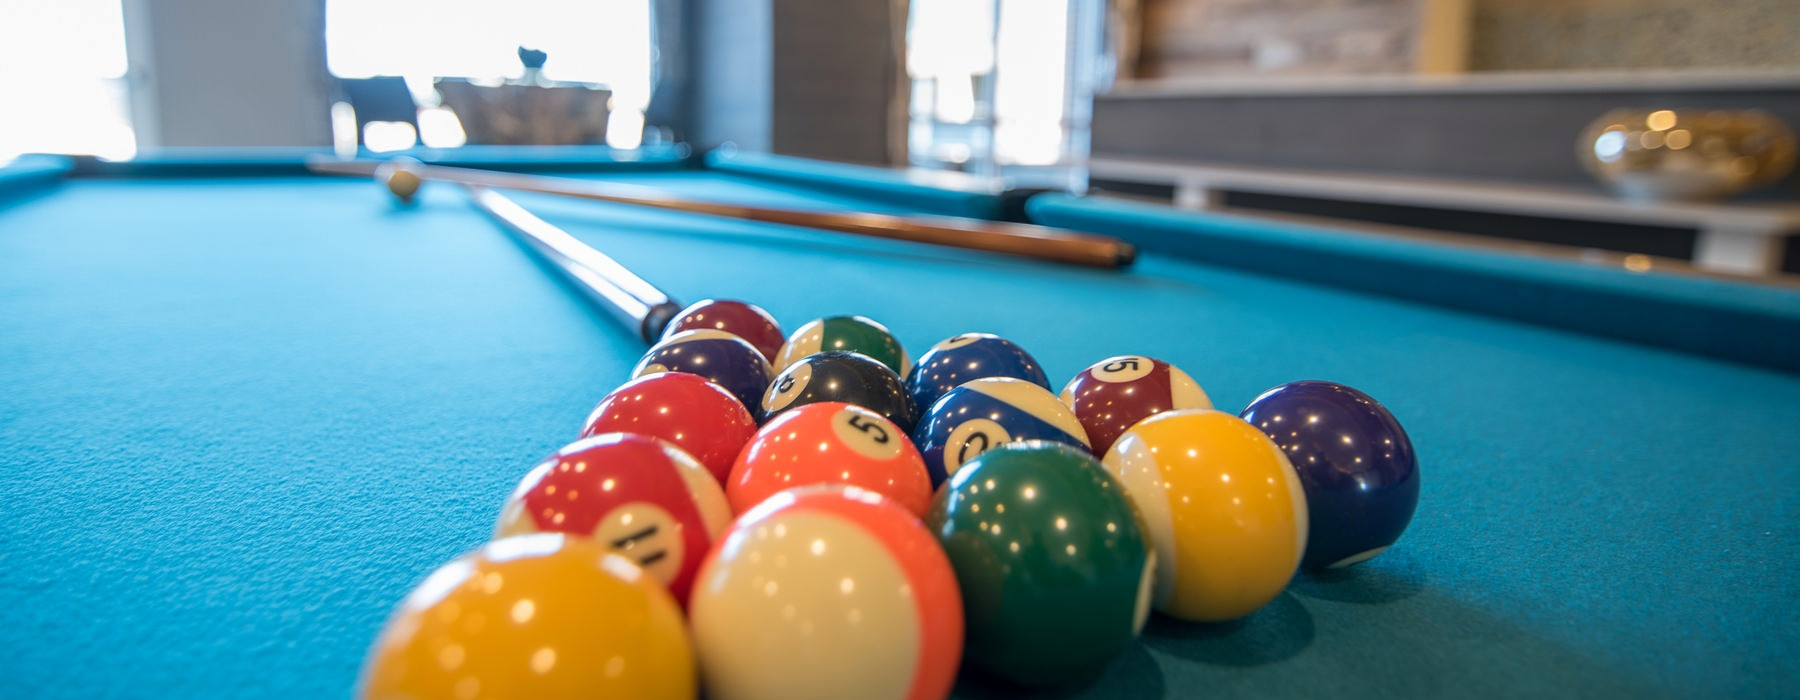 Billiards balls set up for a game on a blue pool table